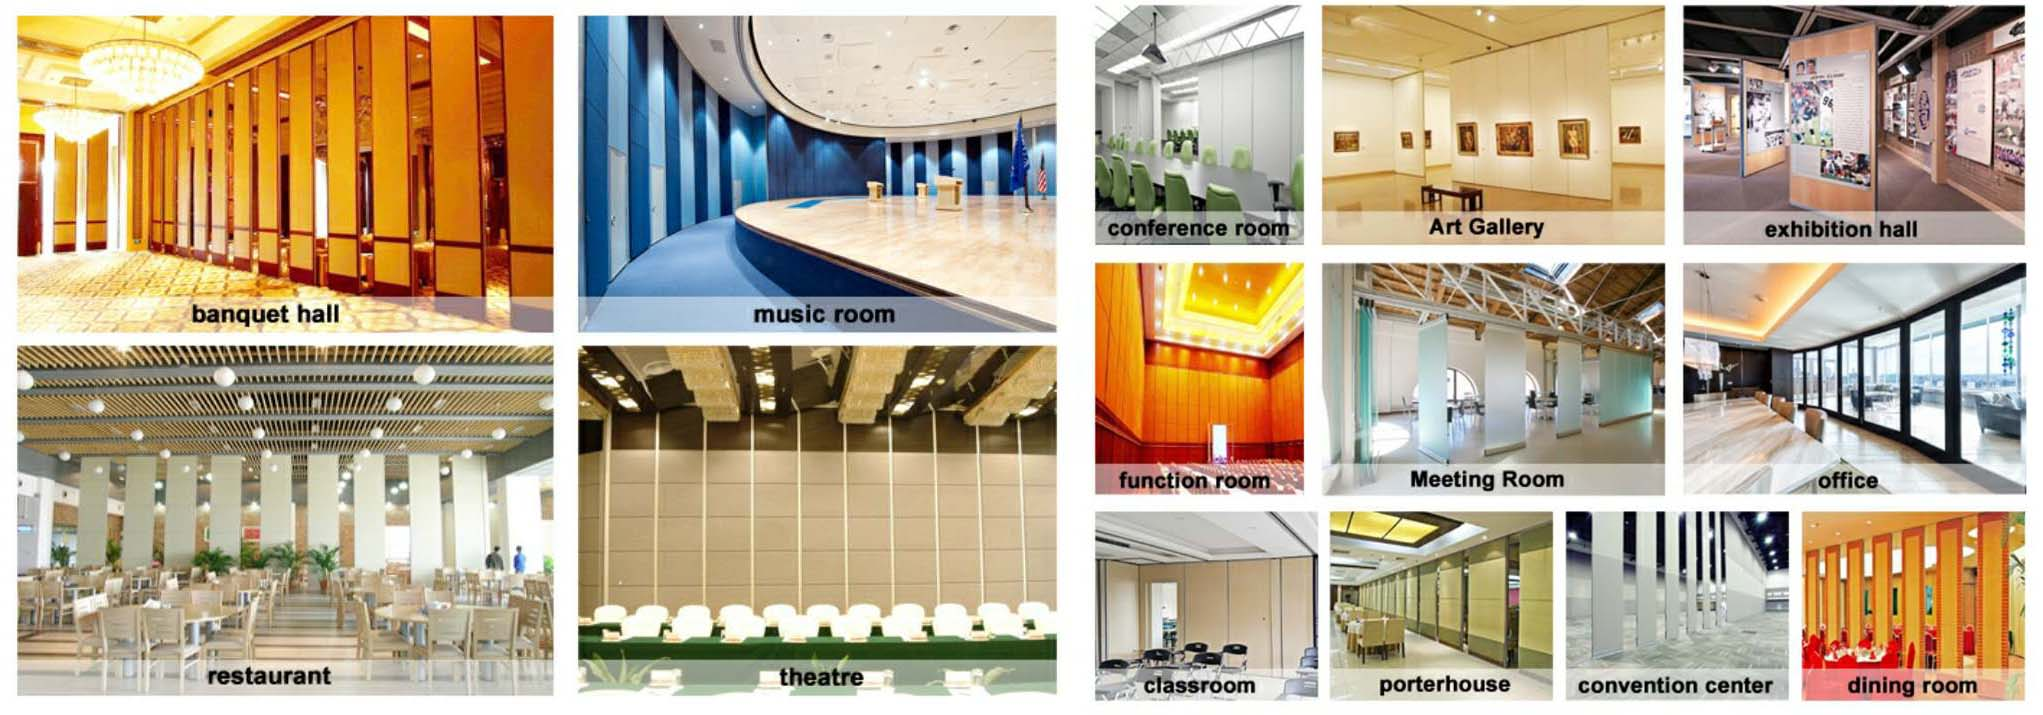 Bunge-Professional Glass Wall Doors Interior Glass Partitions Supplier-15